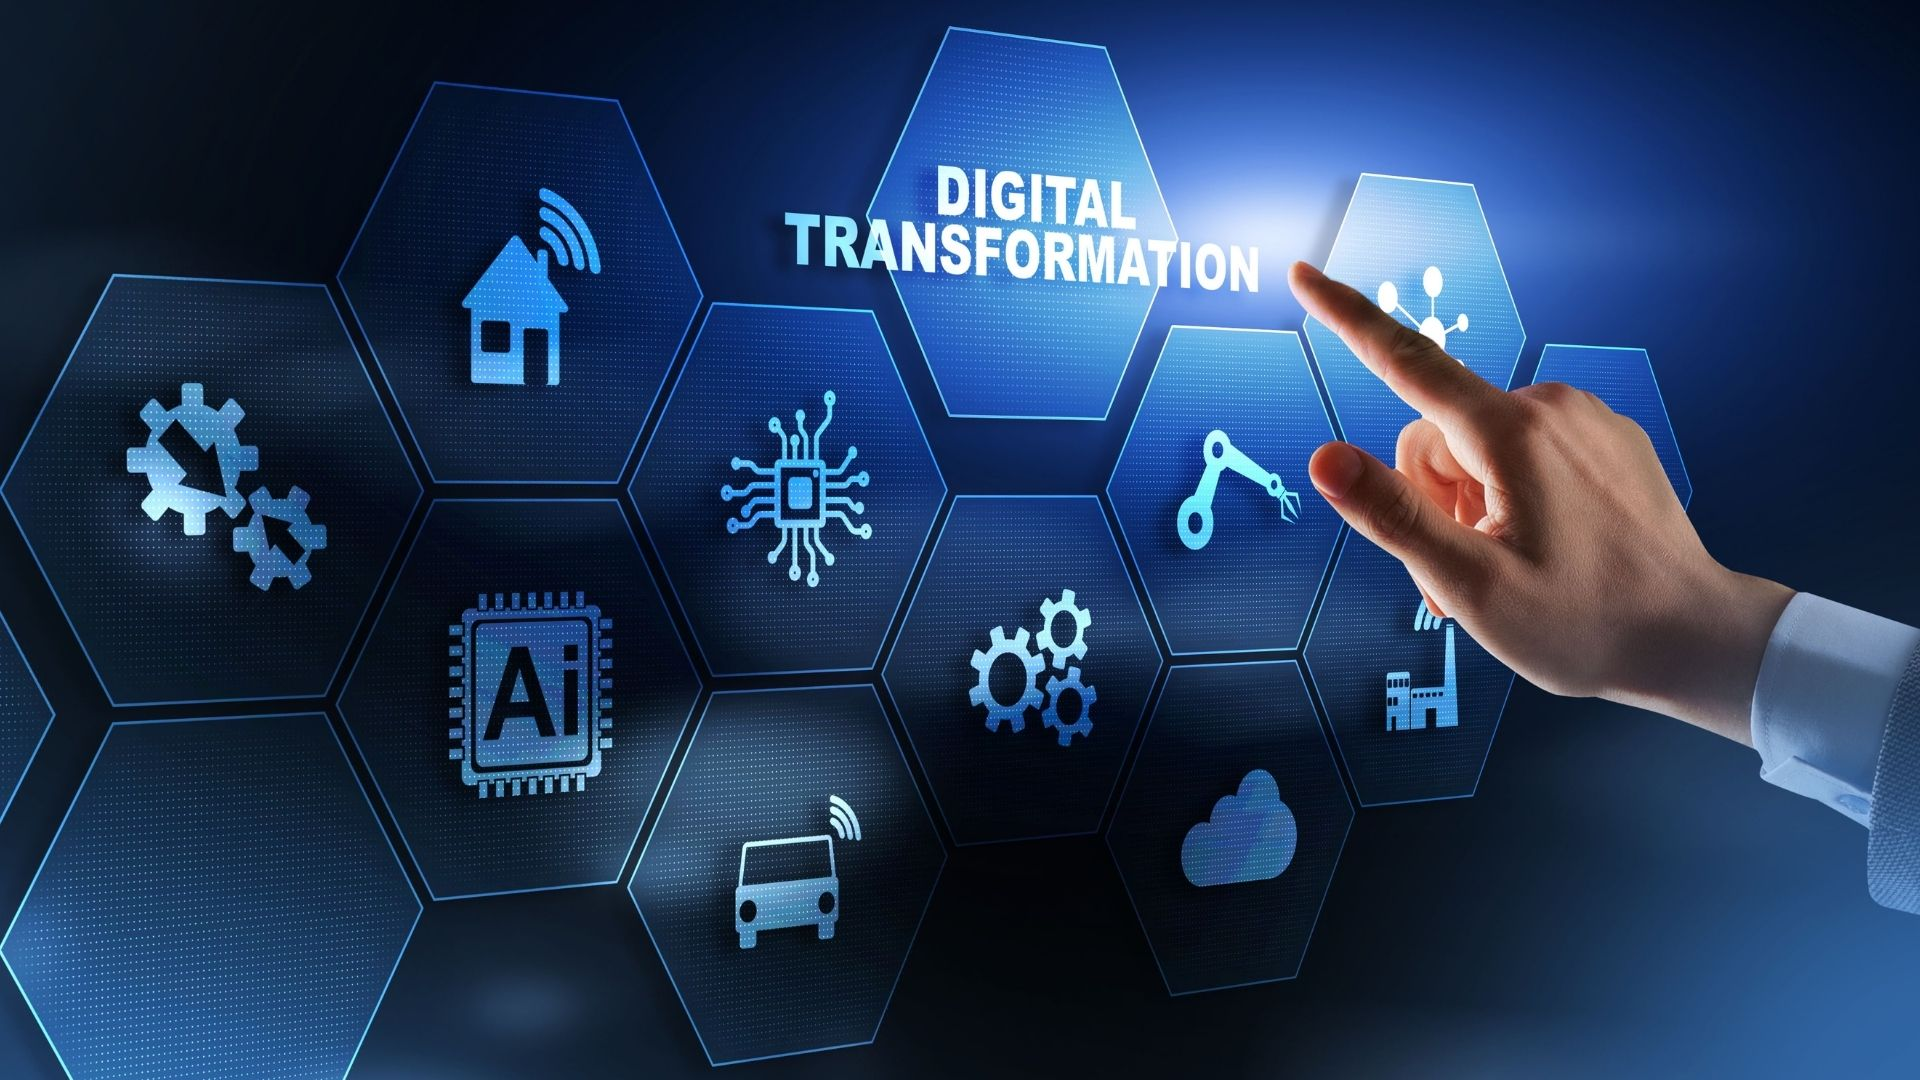 Digital transformation for the world of finance: The rise in collaboration tools and SaaS applications